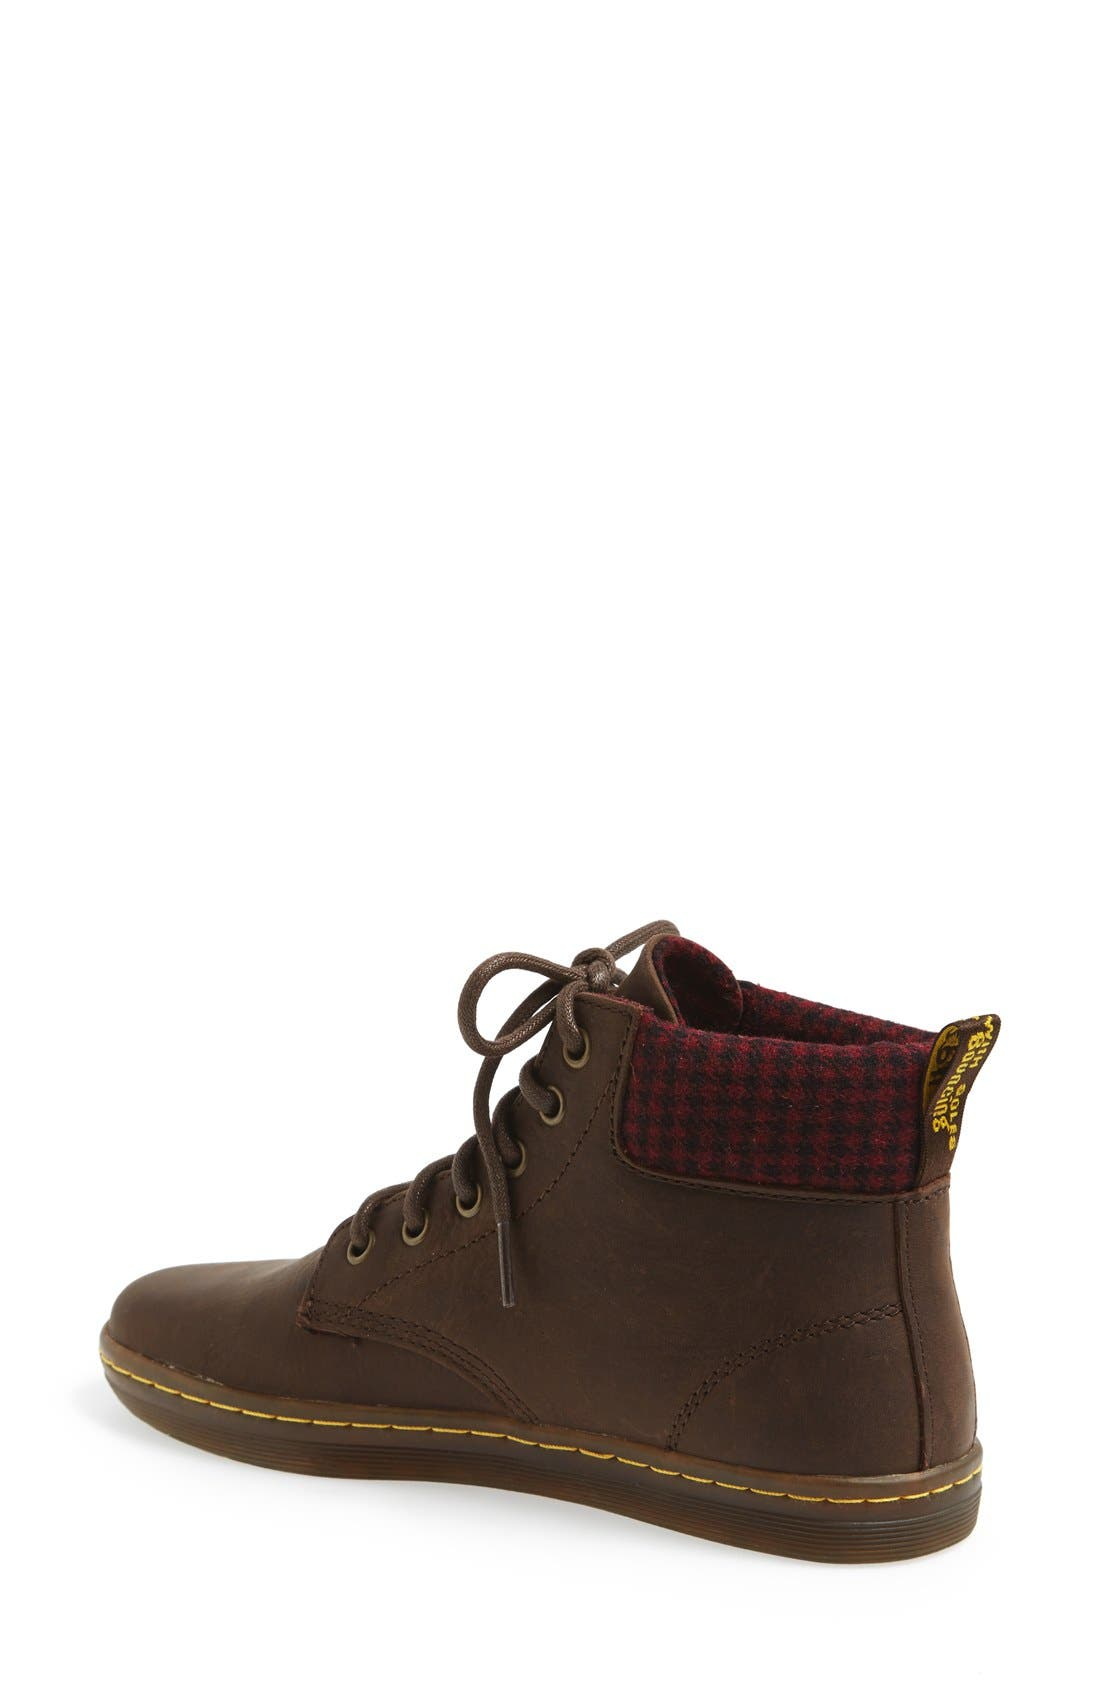 Alternate Image 2  - Dr. Martens 'Maelly' Boot (Women)